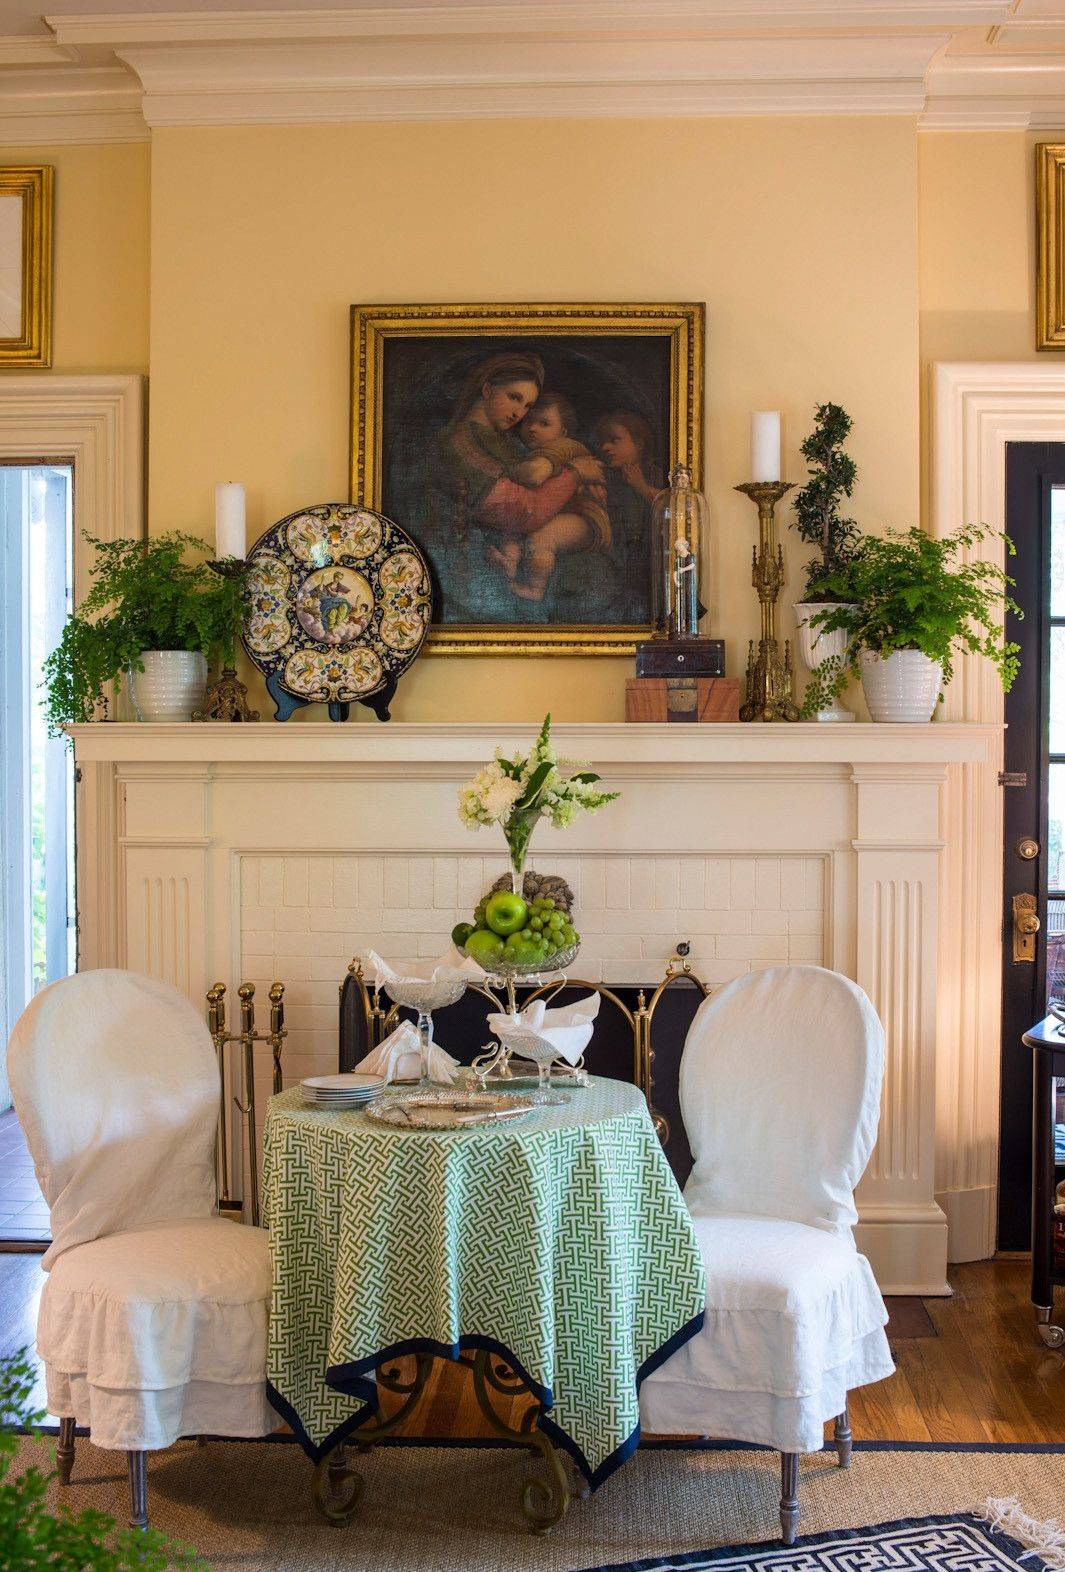 As the unrivaled focal point in a room, the fireplace mantel is the star of the show. So it's fun to give this all-important spot a new look every so often.